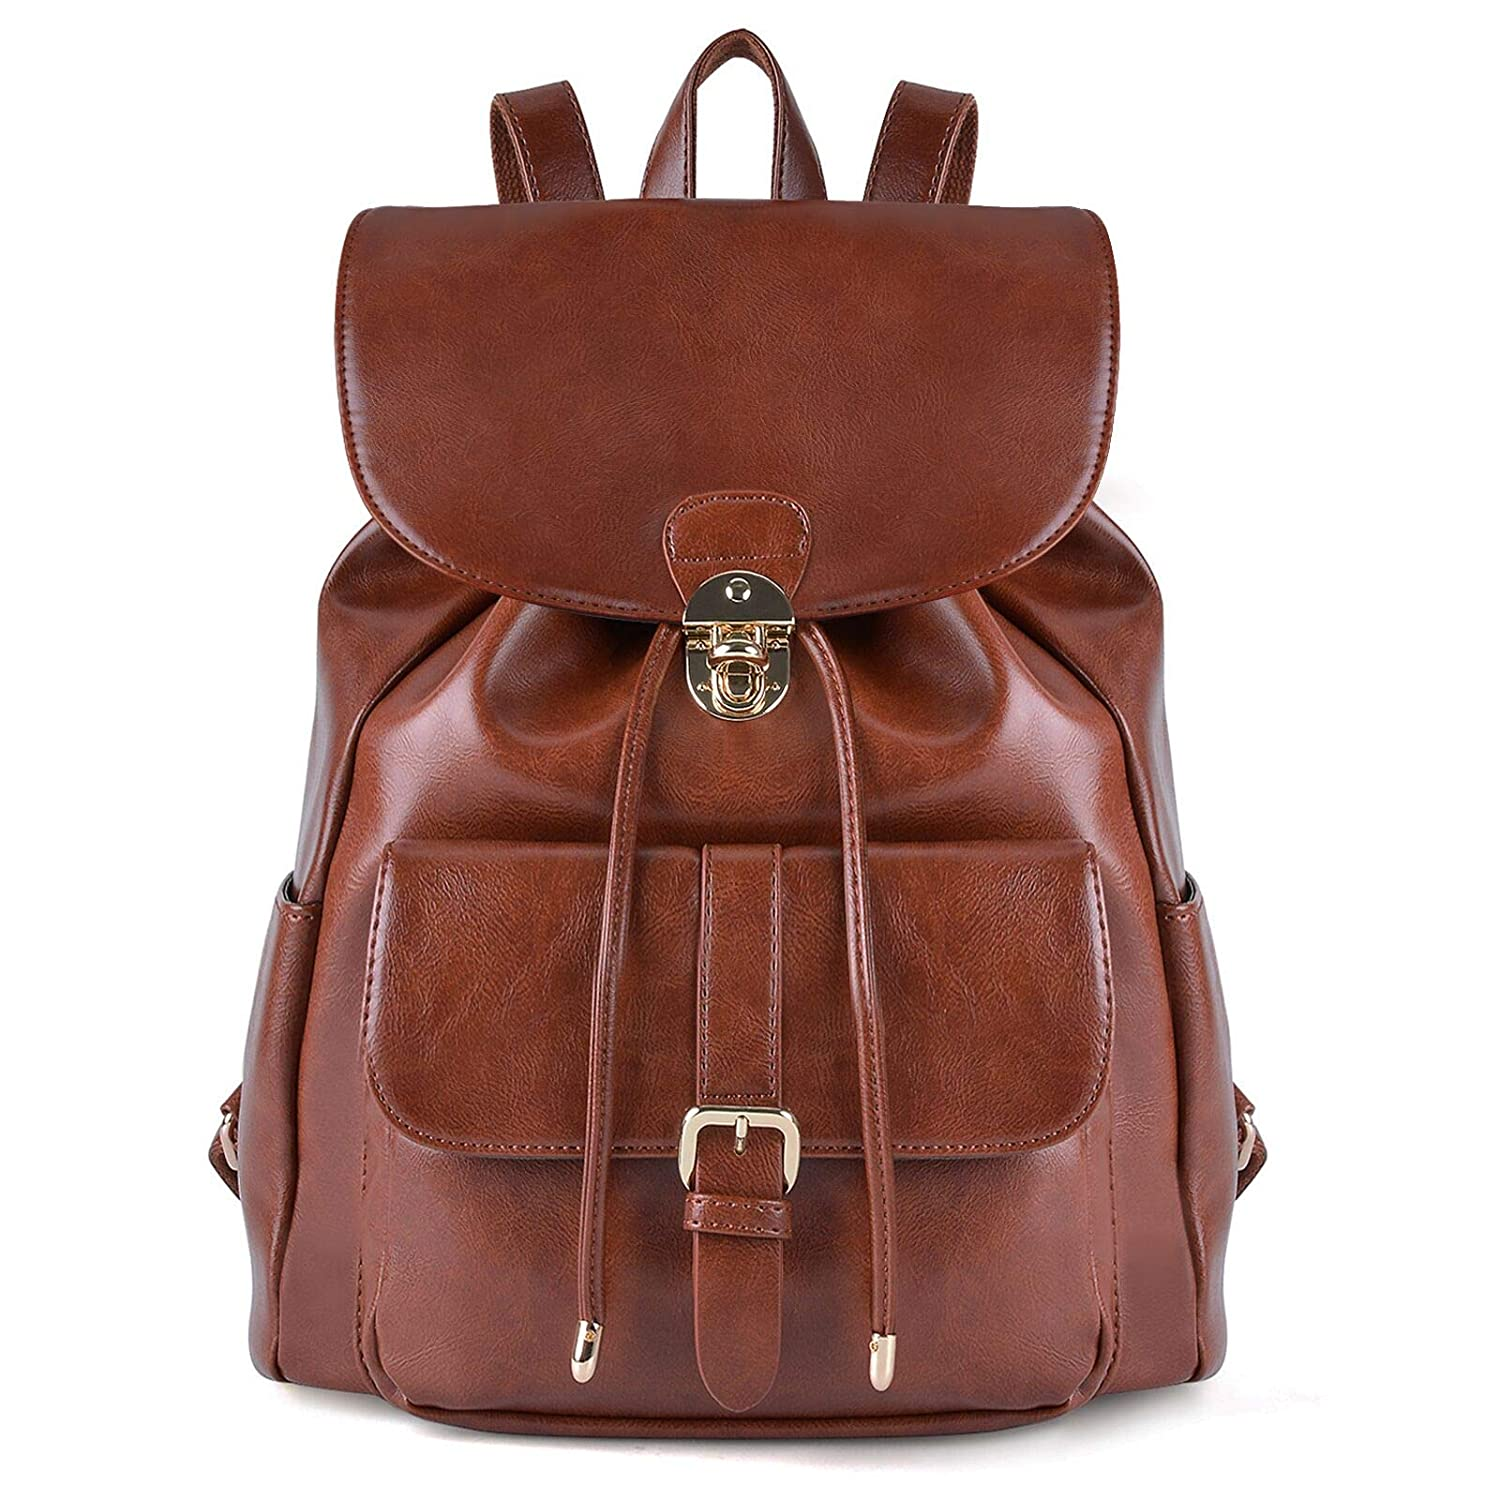 Backpack Womens, COOFIT Leather Backpack Women Ladies Rucksack Drawstring Backpack School Bags Vintage Backpacks for Women Girls